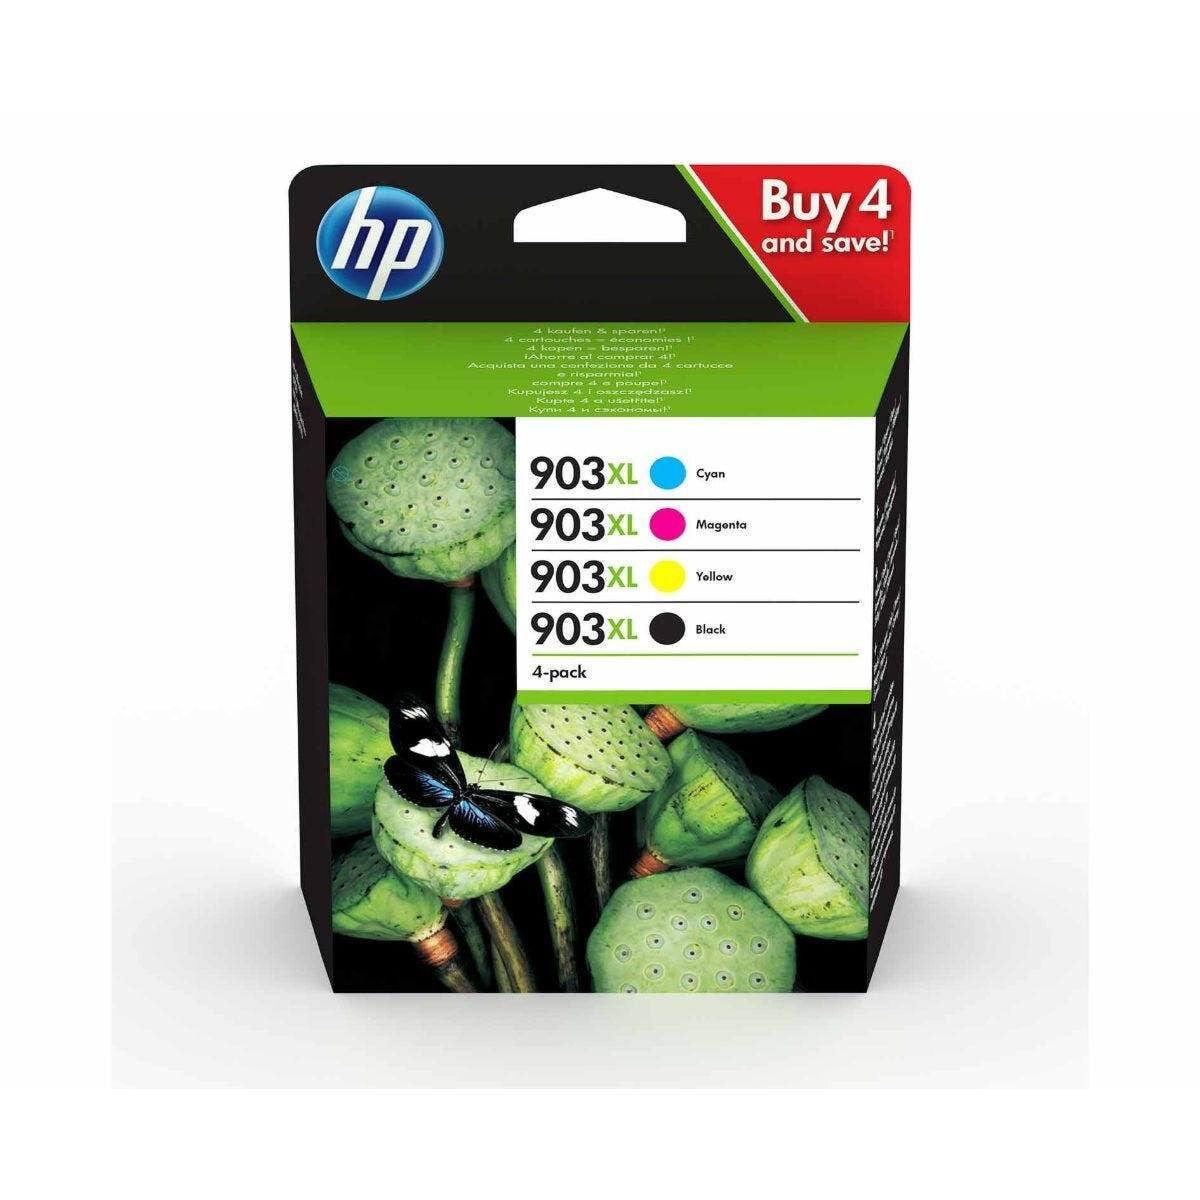 HP 903XL CMYK Multipack Original Ink Cartridge